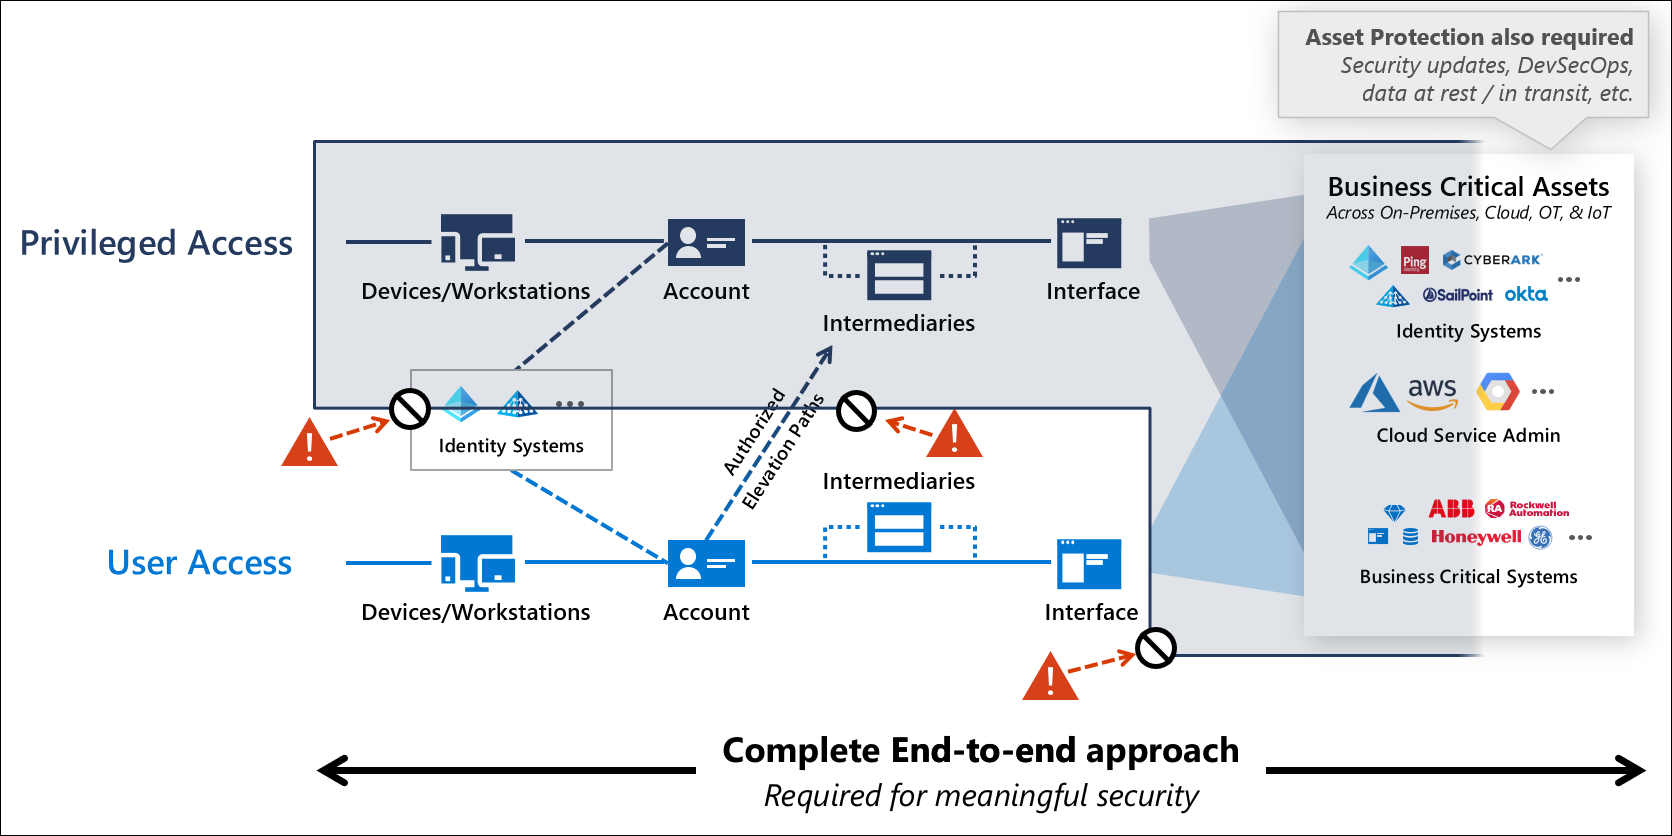 Double-Check Employees' Privileges  Administrative accounts in a Microsoft 365 environments have elevated privileges, which are valuable attacker targets and should only be used for administrative tasks. Microsoft advises admins to keep a separate user account for regular, non-admin use to limit privileged access. Admin accounts should be configured with MFA and used carefully. Before using an admin account, an employee should close unrelated browser sessions and apps, including personal email accounts; after completing admin tasks, they should log out of the browser session. Accounts with privileged permissions are oftentimes more than just those assigned the 'Global Administrator' role, says McWhirt. He encourages admins to review and validate the scope of accounts assigned privileged permissions and roles within Microsoft 365, and to use separate cloud-only accounts for managing the Microsoft 365 tenant. 'It's not uncommon to provide too many administrative accounts when quickly adopting a new technology,' says Hass. 'These permissions are rarely restricted later on.' Following the rule of least privilege, he adds, is 'extremely important.' Privileged accounts used to access and manage Microsoft 365 resources should only be allowed to connect from trusted locations, FireEye experts write in a whitepaper on hardening Microsoft 365 in the wake of SolarWinds. These locations usually consist of public IP address blocks managed by the business. Before enabling this policy, experts warn admins to test in Report-Only mode to ensure that the configuration works as expected. This prevents accounts from being locked out of Microsoft 365, they say. (Image: Microsoft)